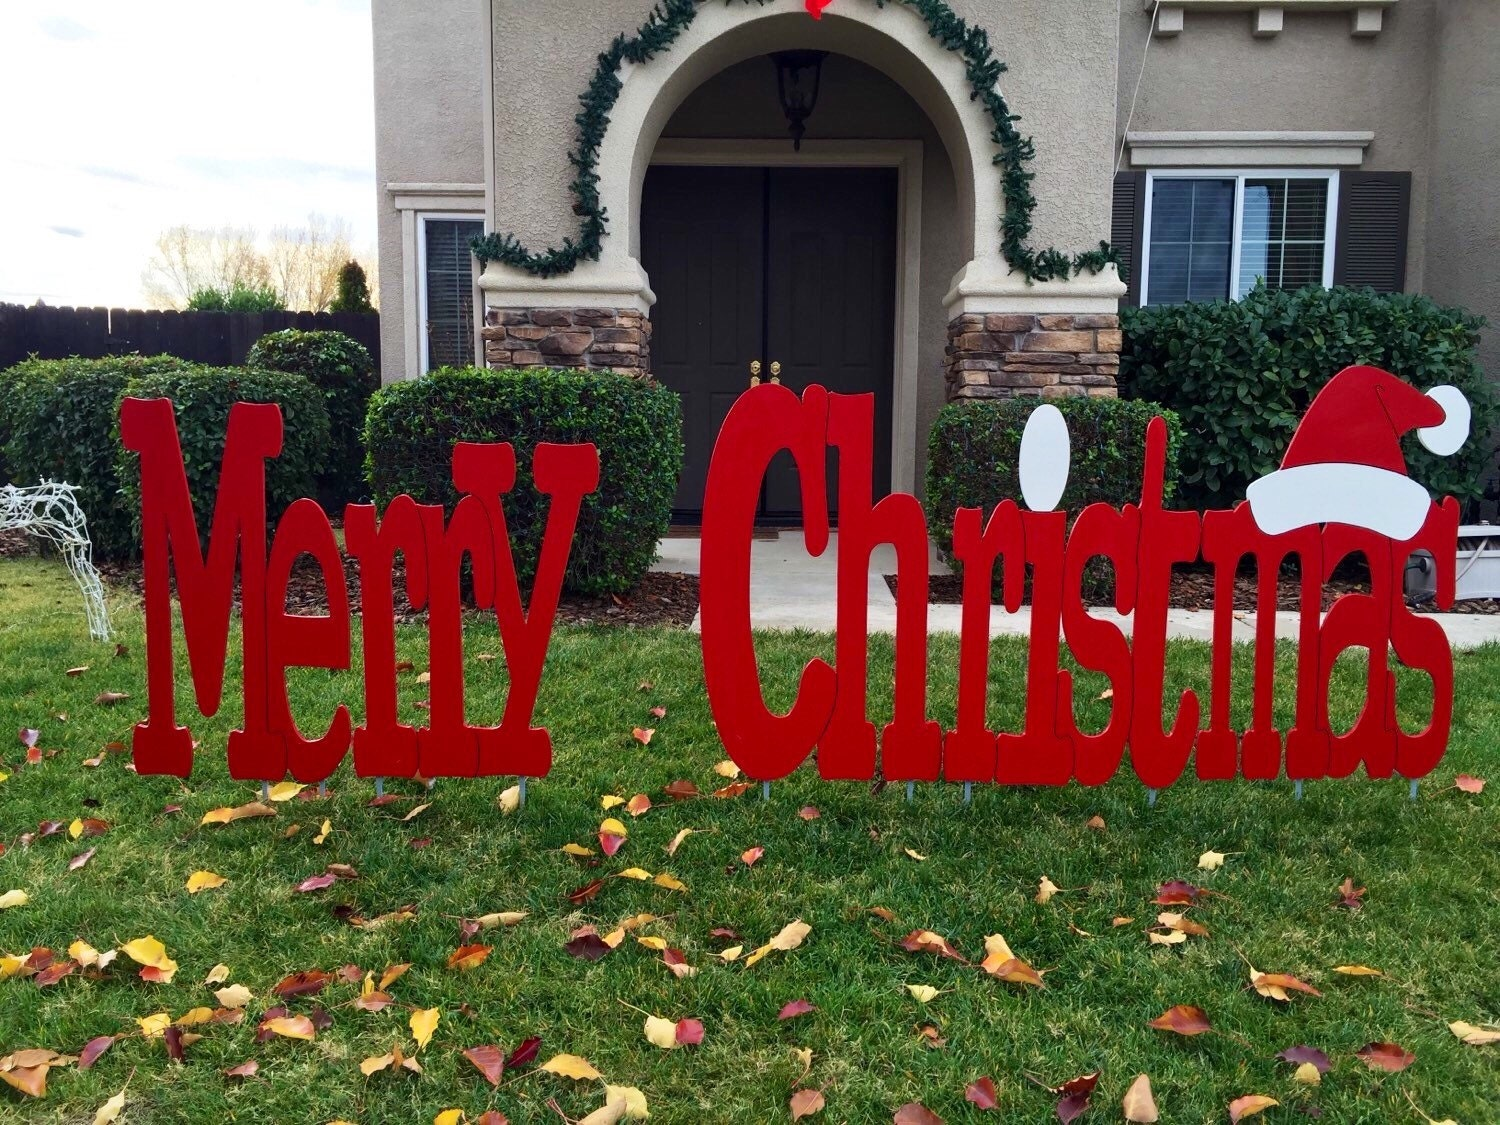 Merry christmas outdoor holiday yard art sign large for Outdoor christmas